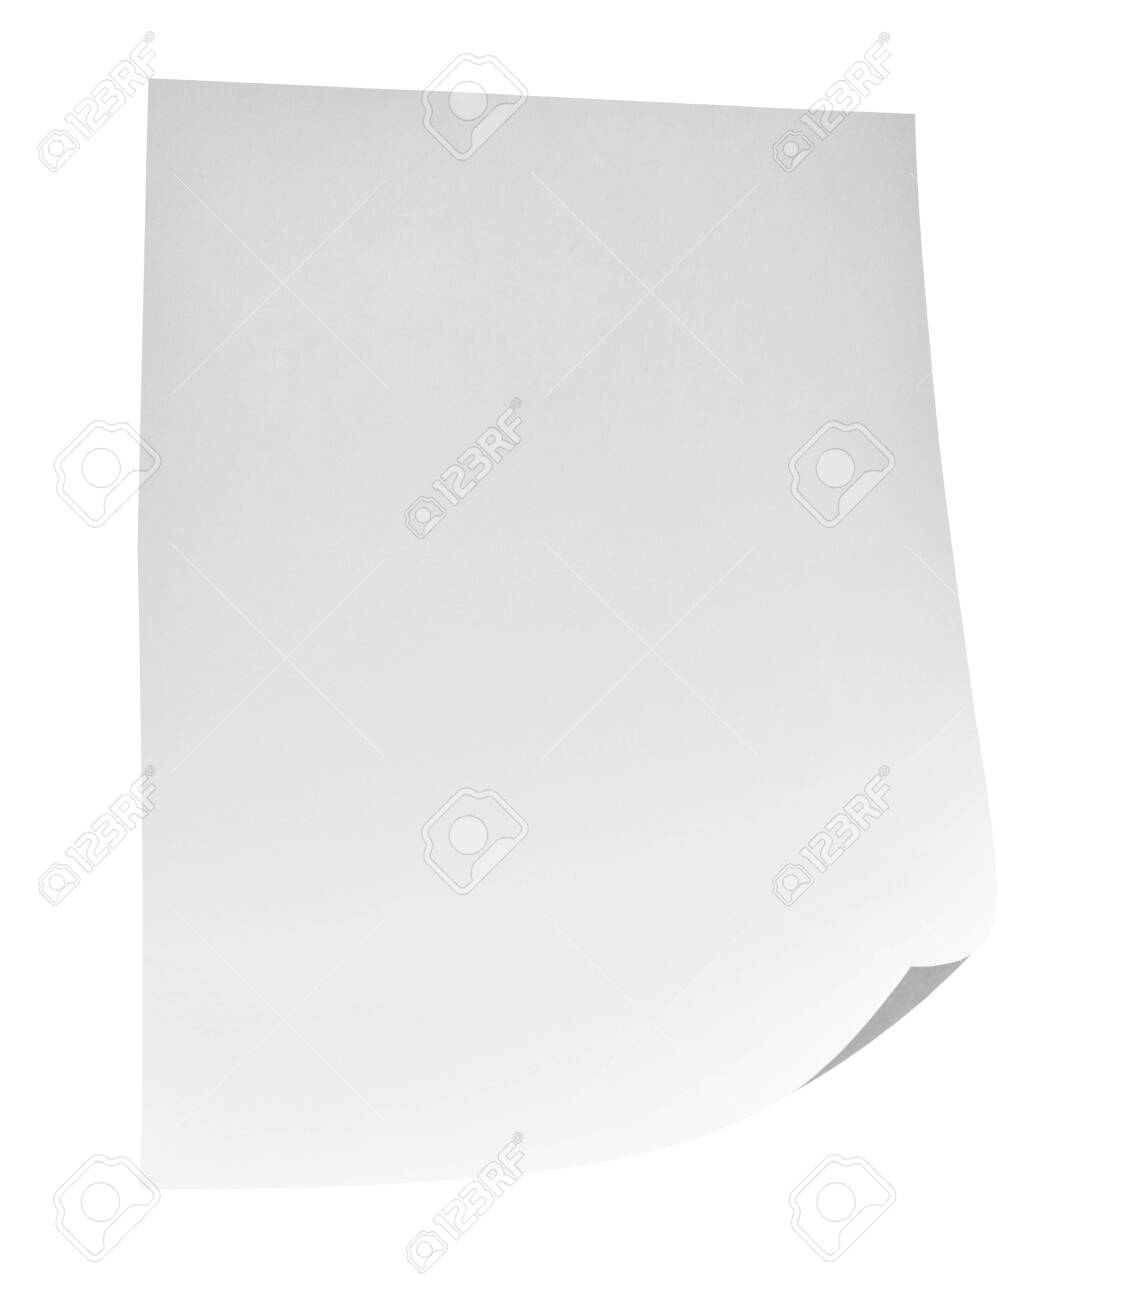 close up of flying papers on white background - 138798081